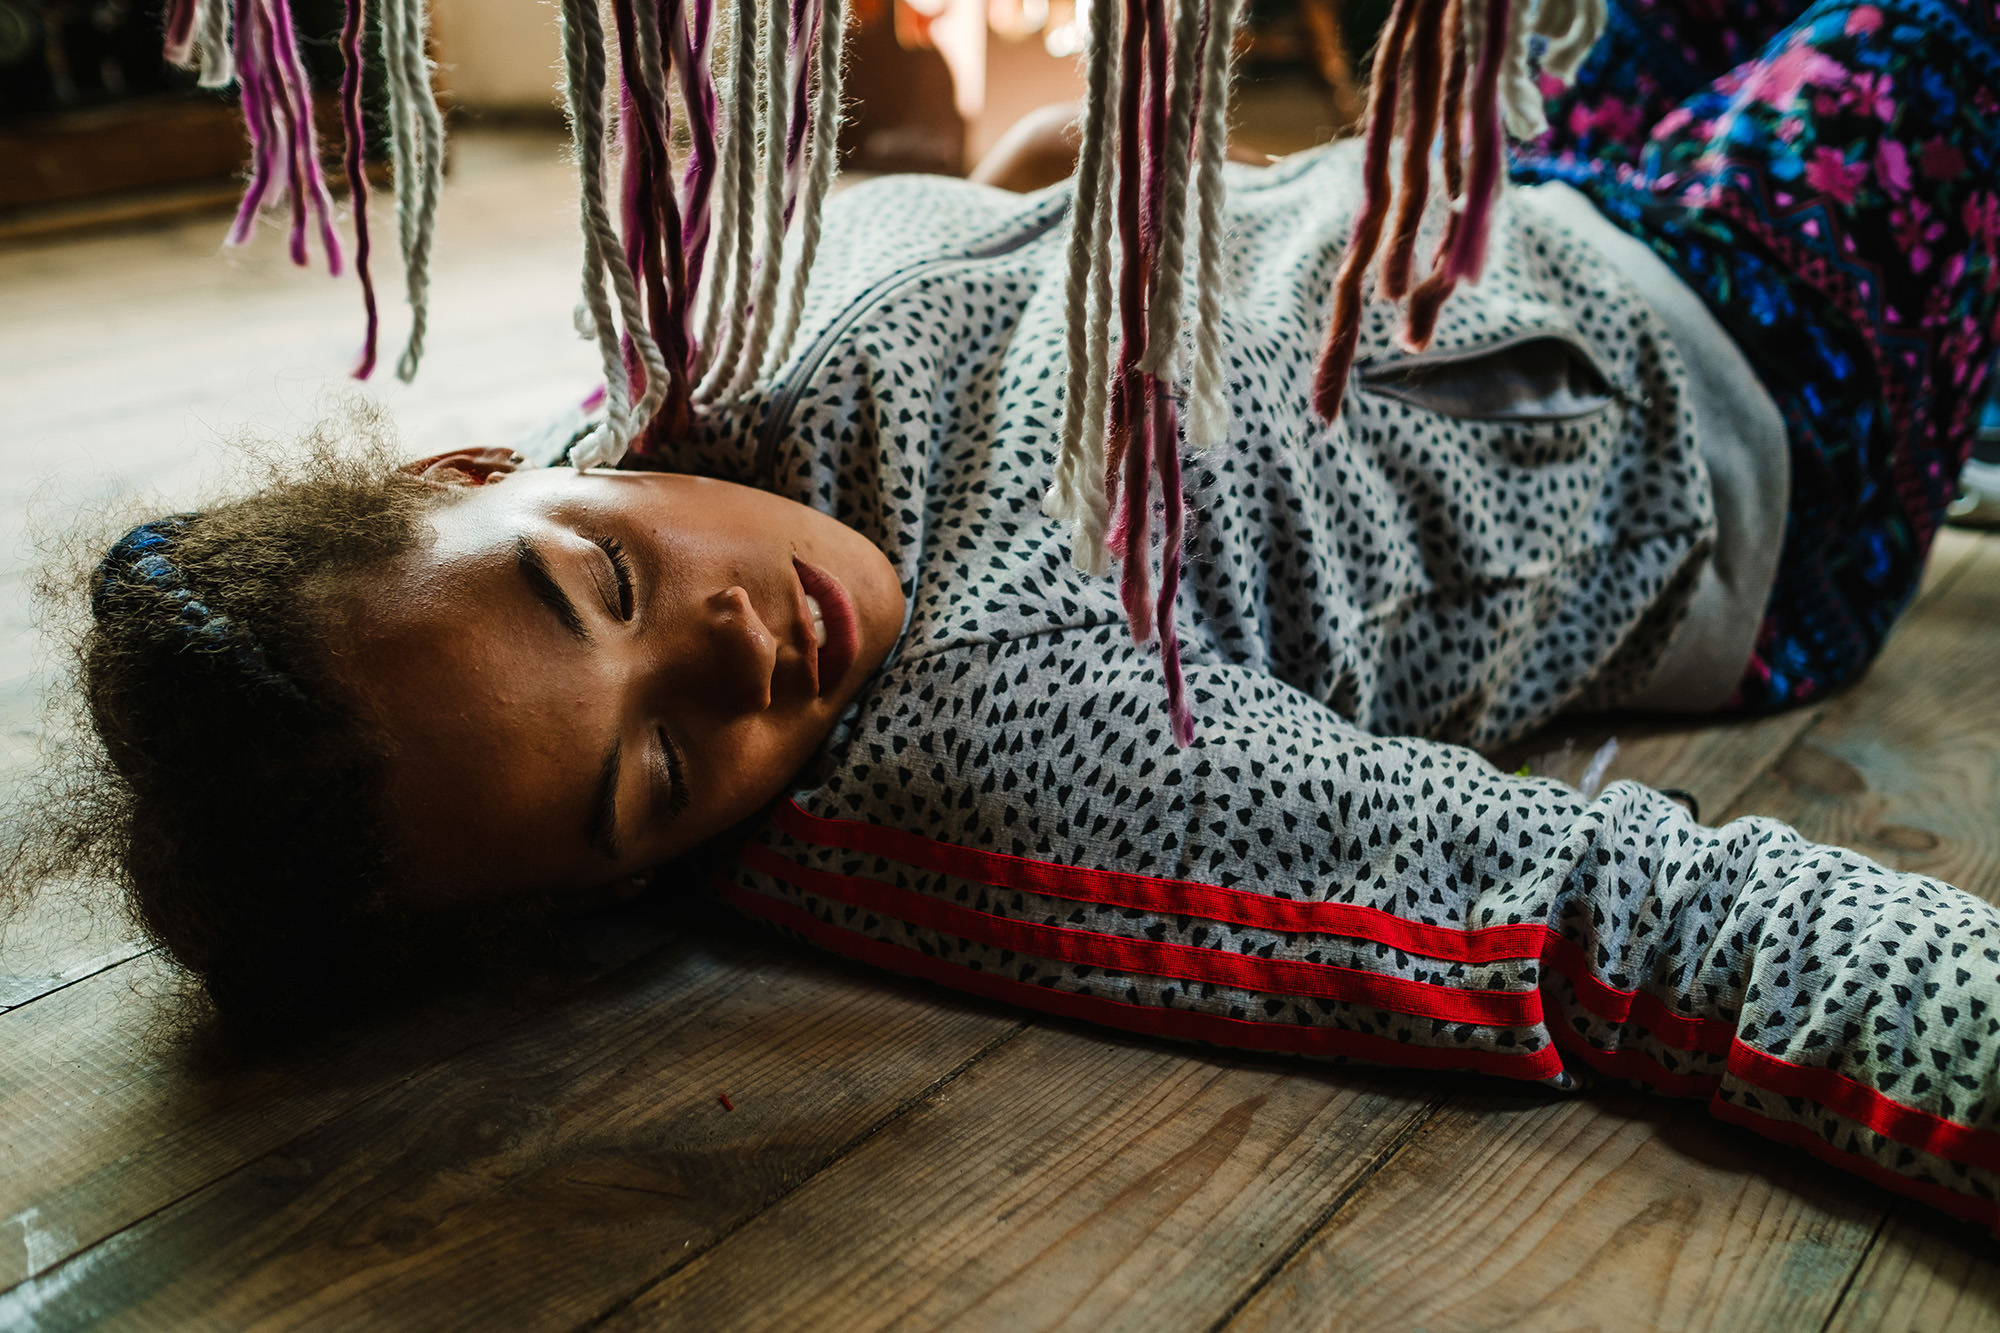 Halle on the floor with a hanging rug